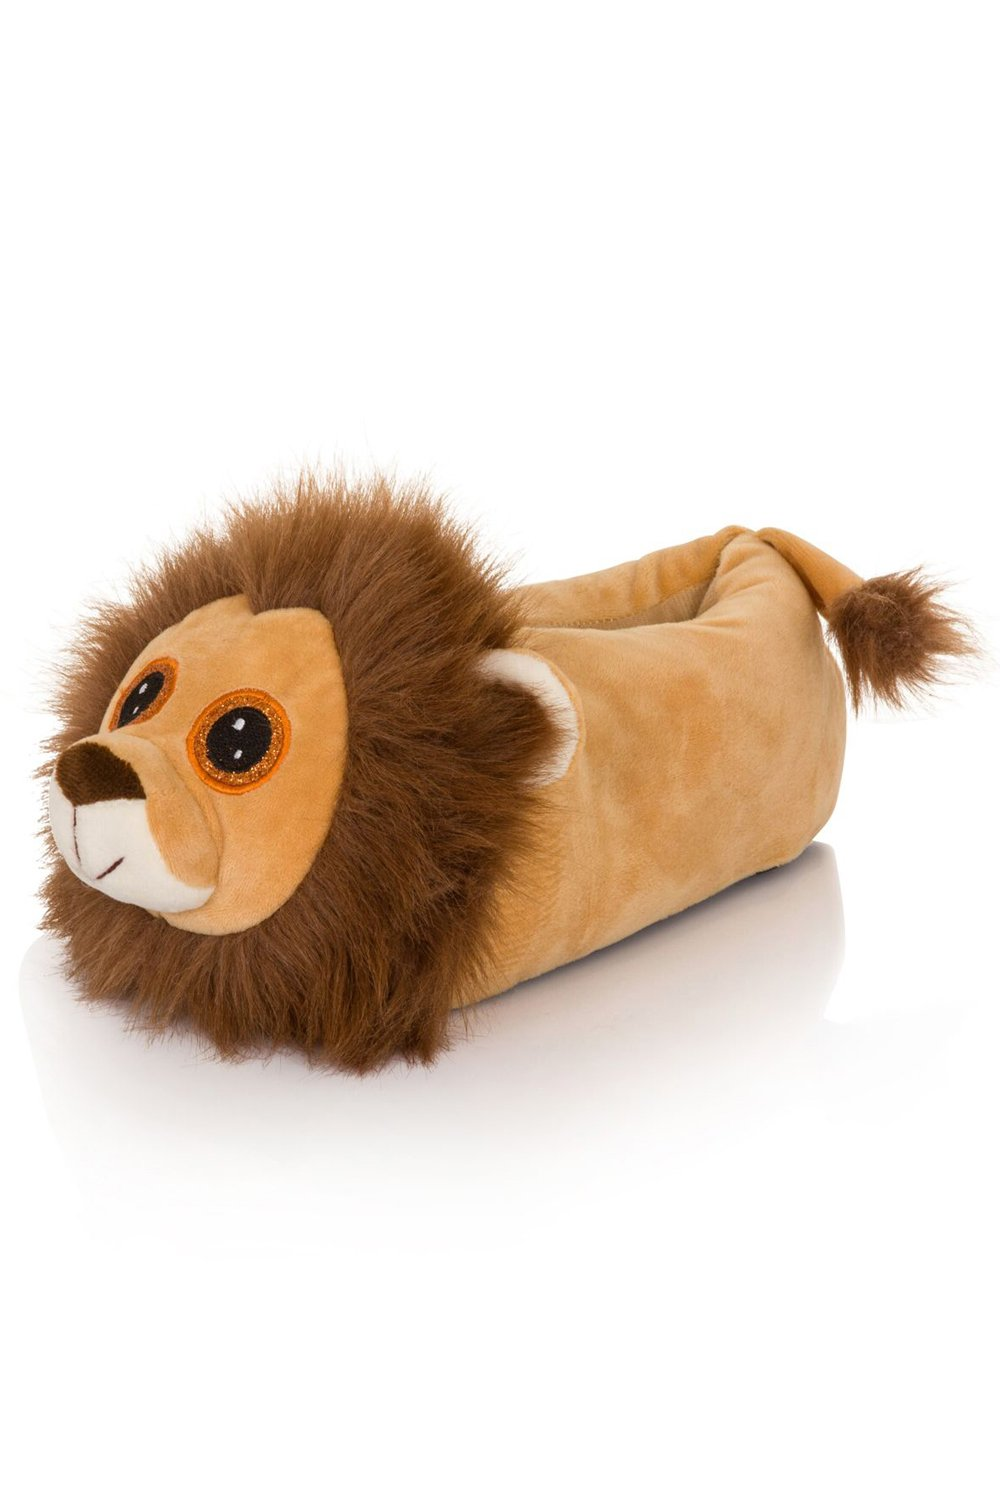 Chaussons fantaisie - B07GBPYD53 en peluche - animal - Chaussons femme/fille Novelty Lion b6bf8e0 - reprogrammed.space